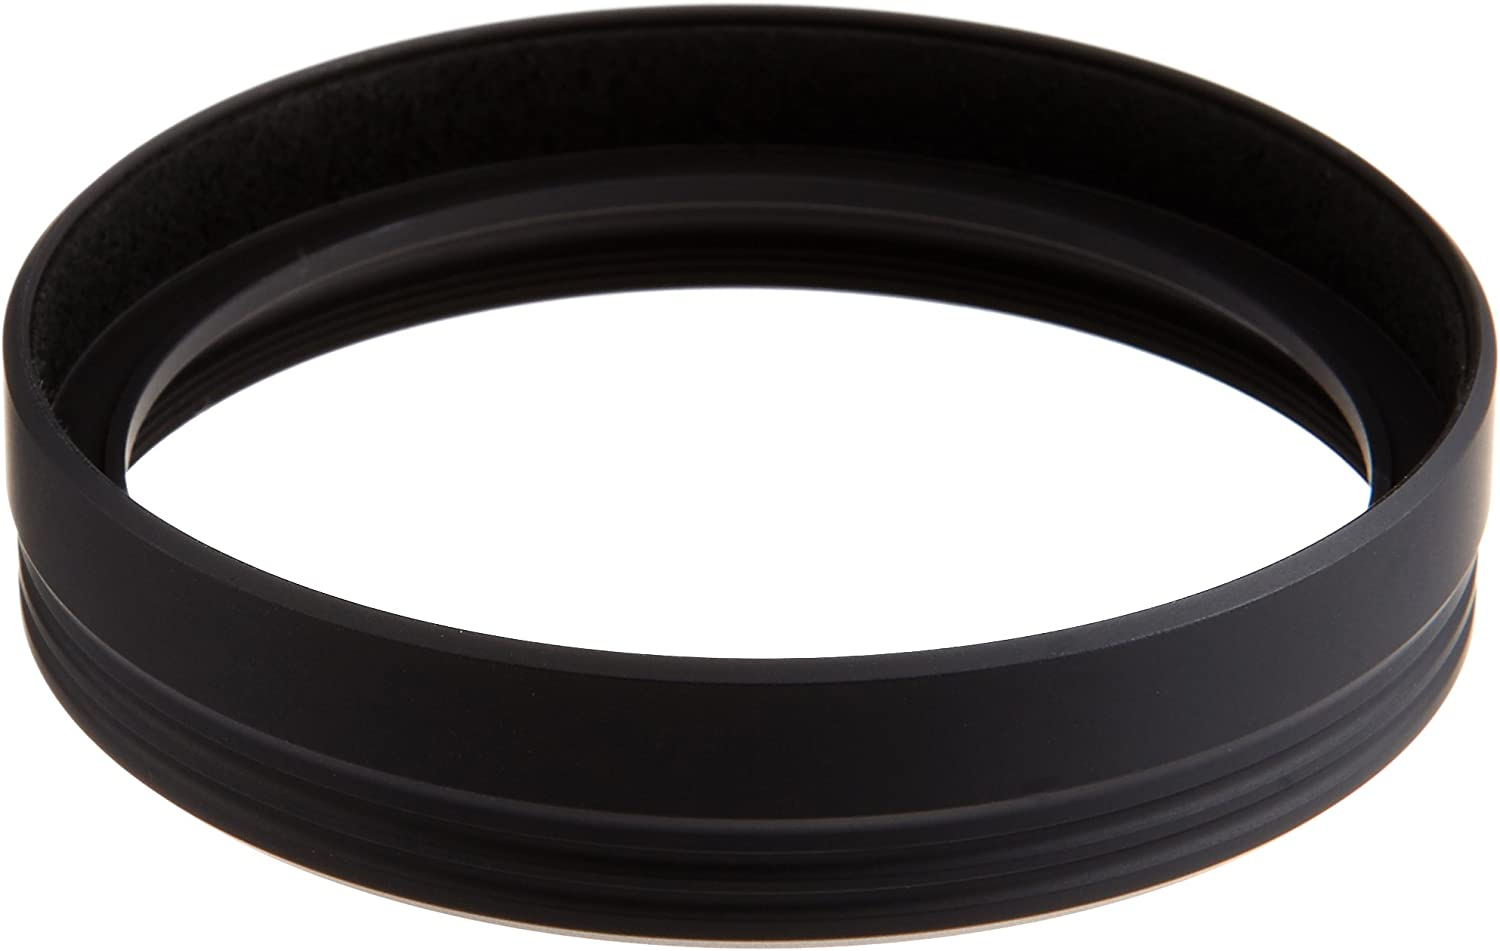 Sigma Front Cap Adapter for 4.5mm F2.8 Fisheye Lens